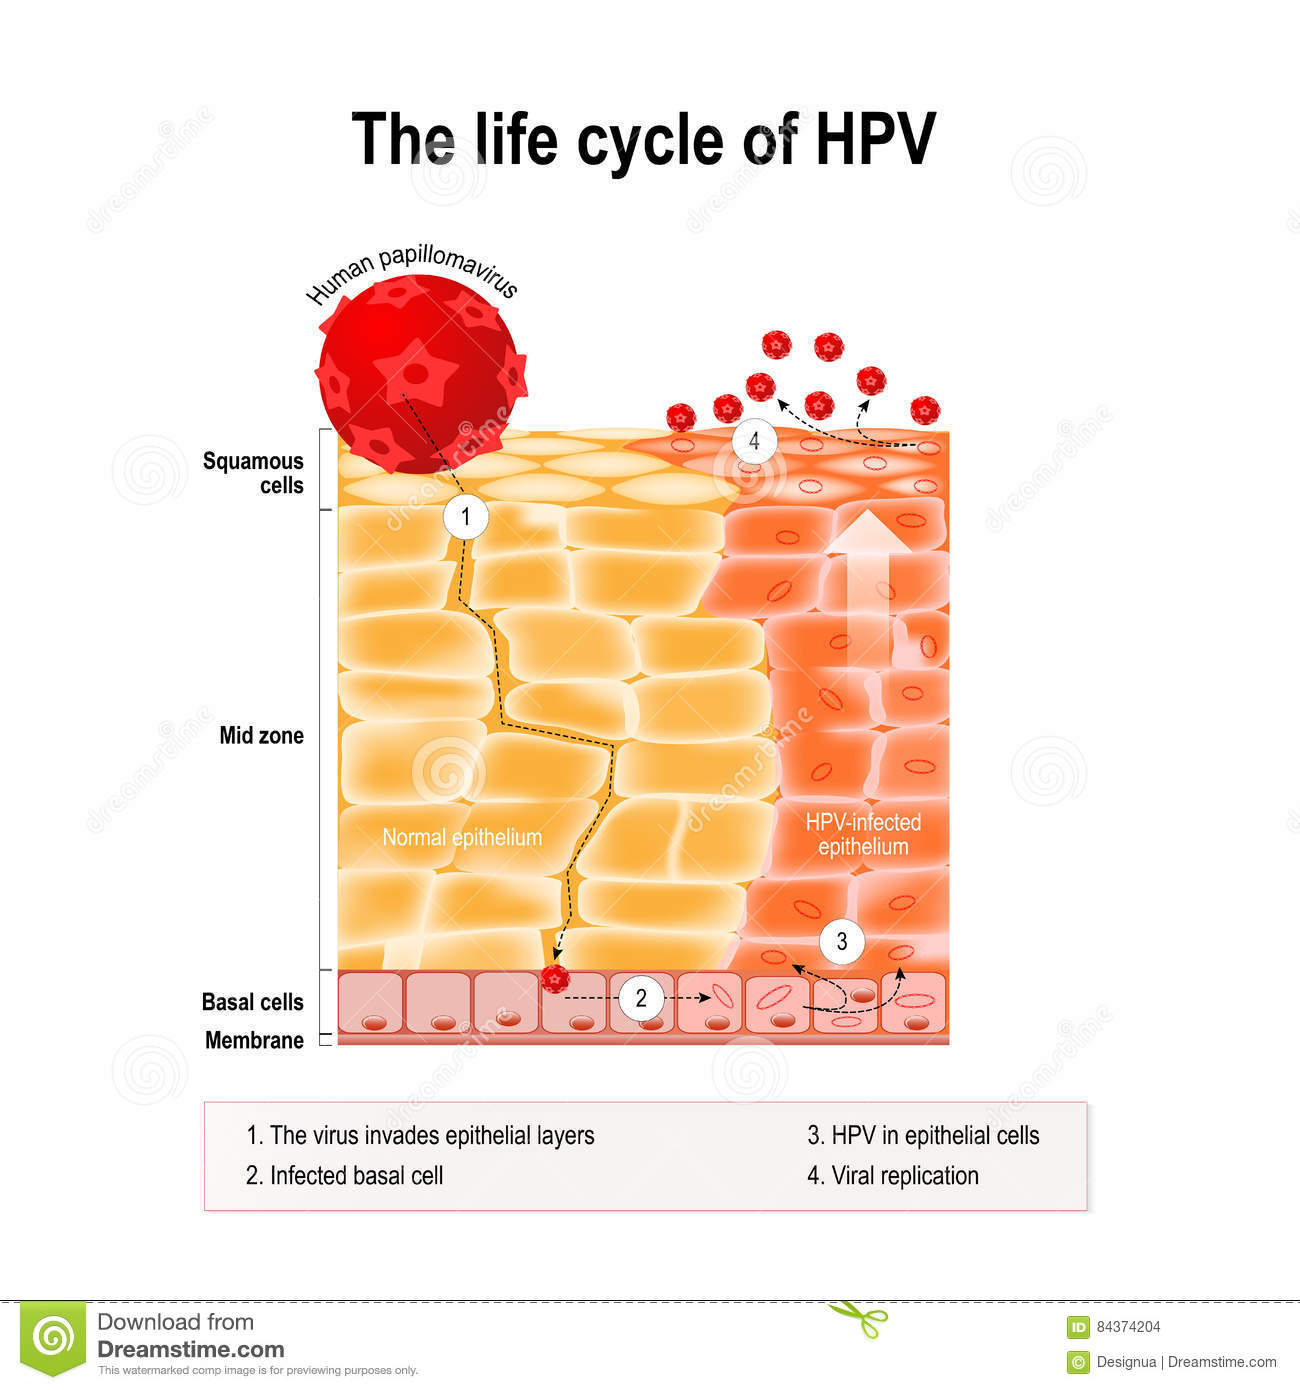 hpv life cycle diagram)